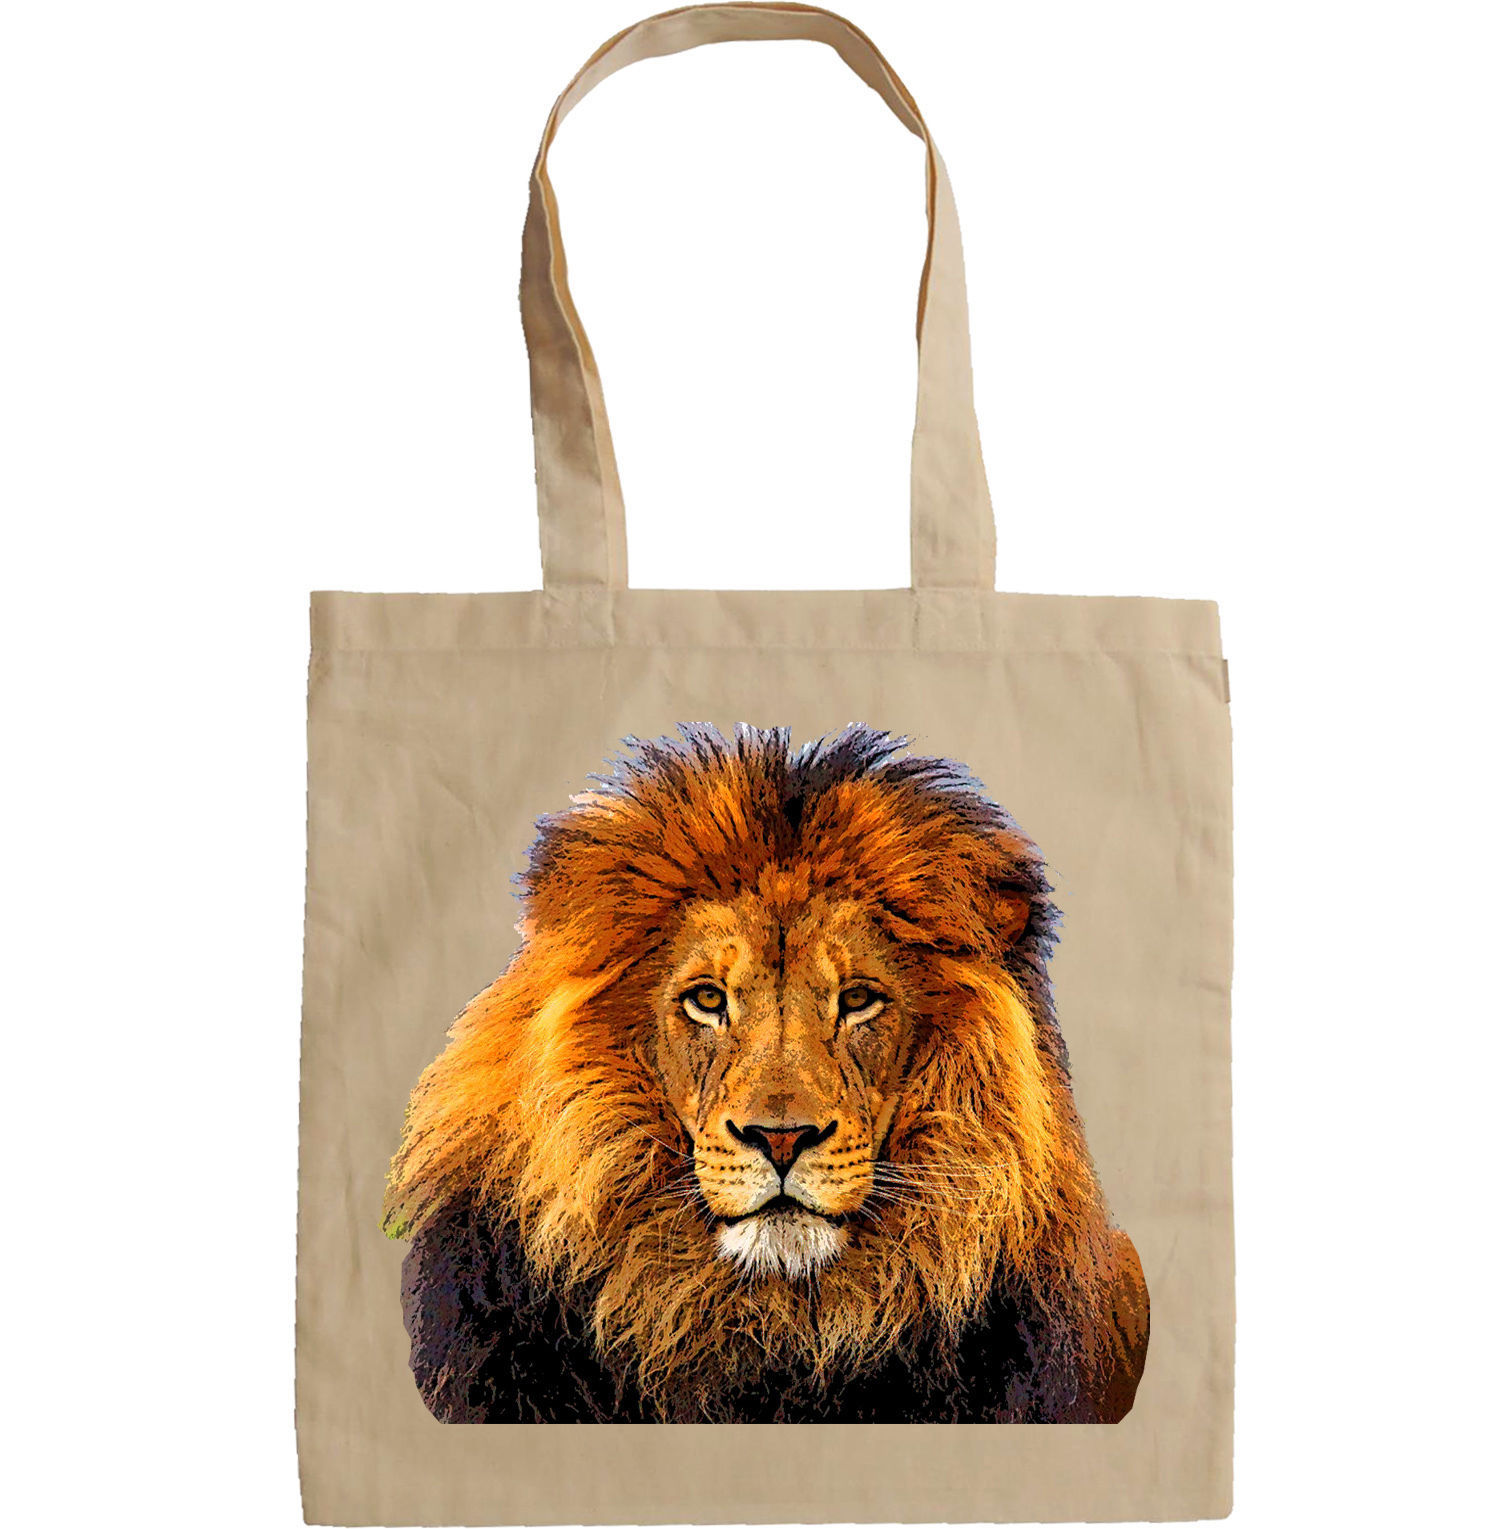 LION PAINTING CANVAS STYLE - NEW AMAZING GRAPHIC HAND BAG/TOTE BAG